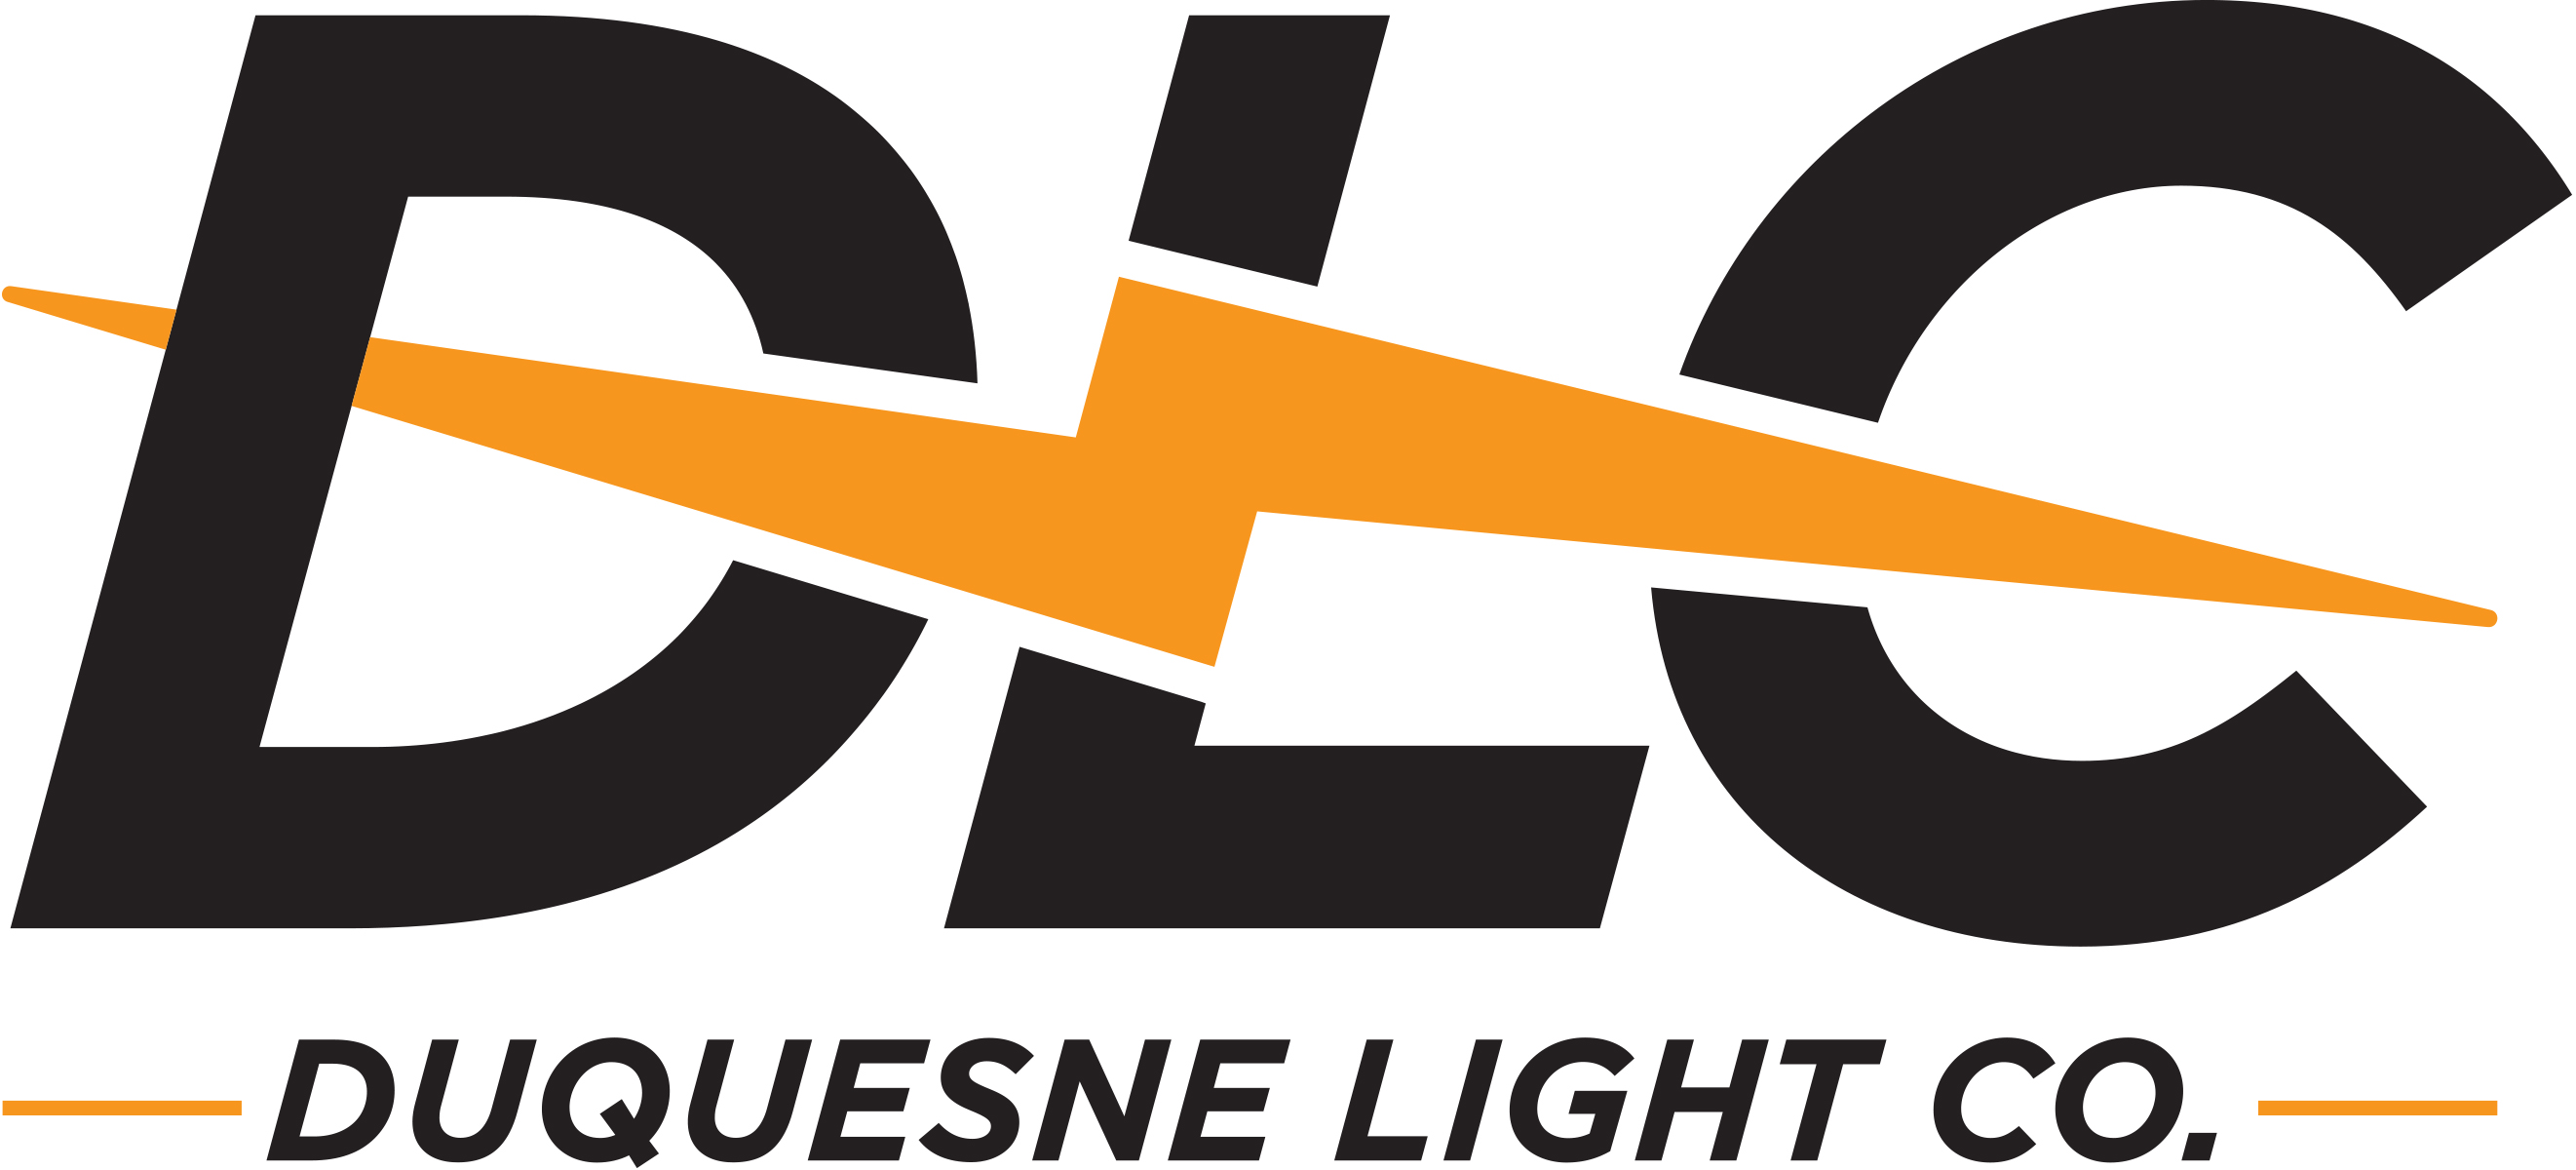 lighting trading light company social logo golden and for commercial agencies